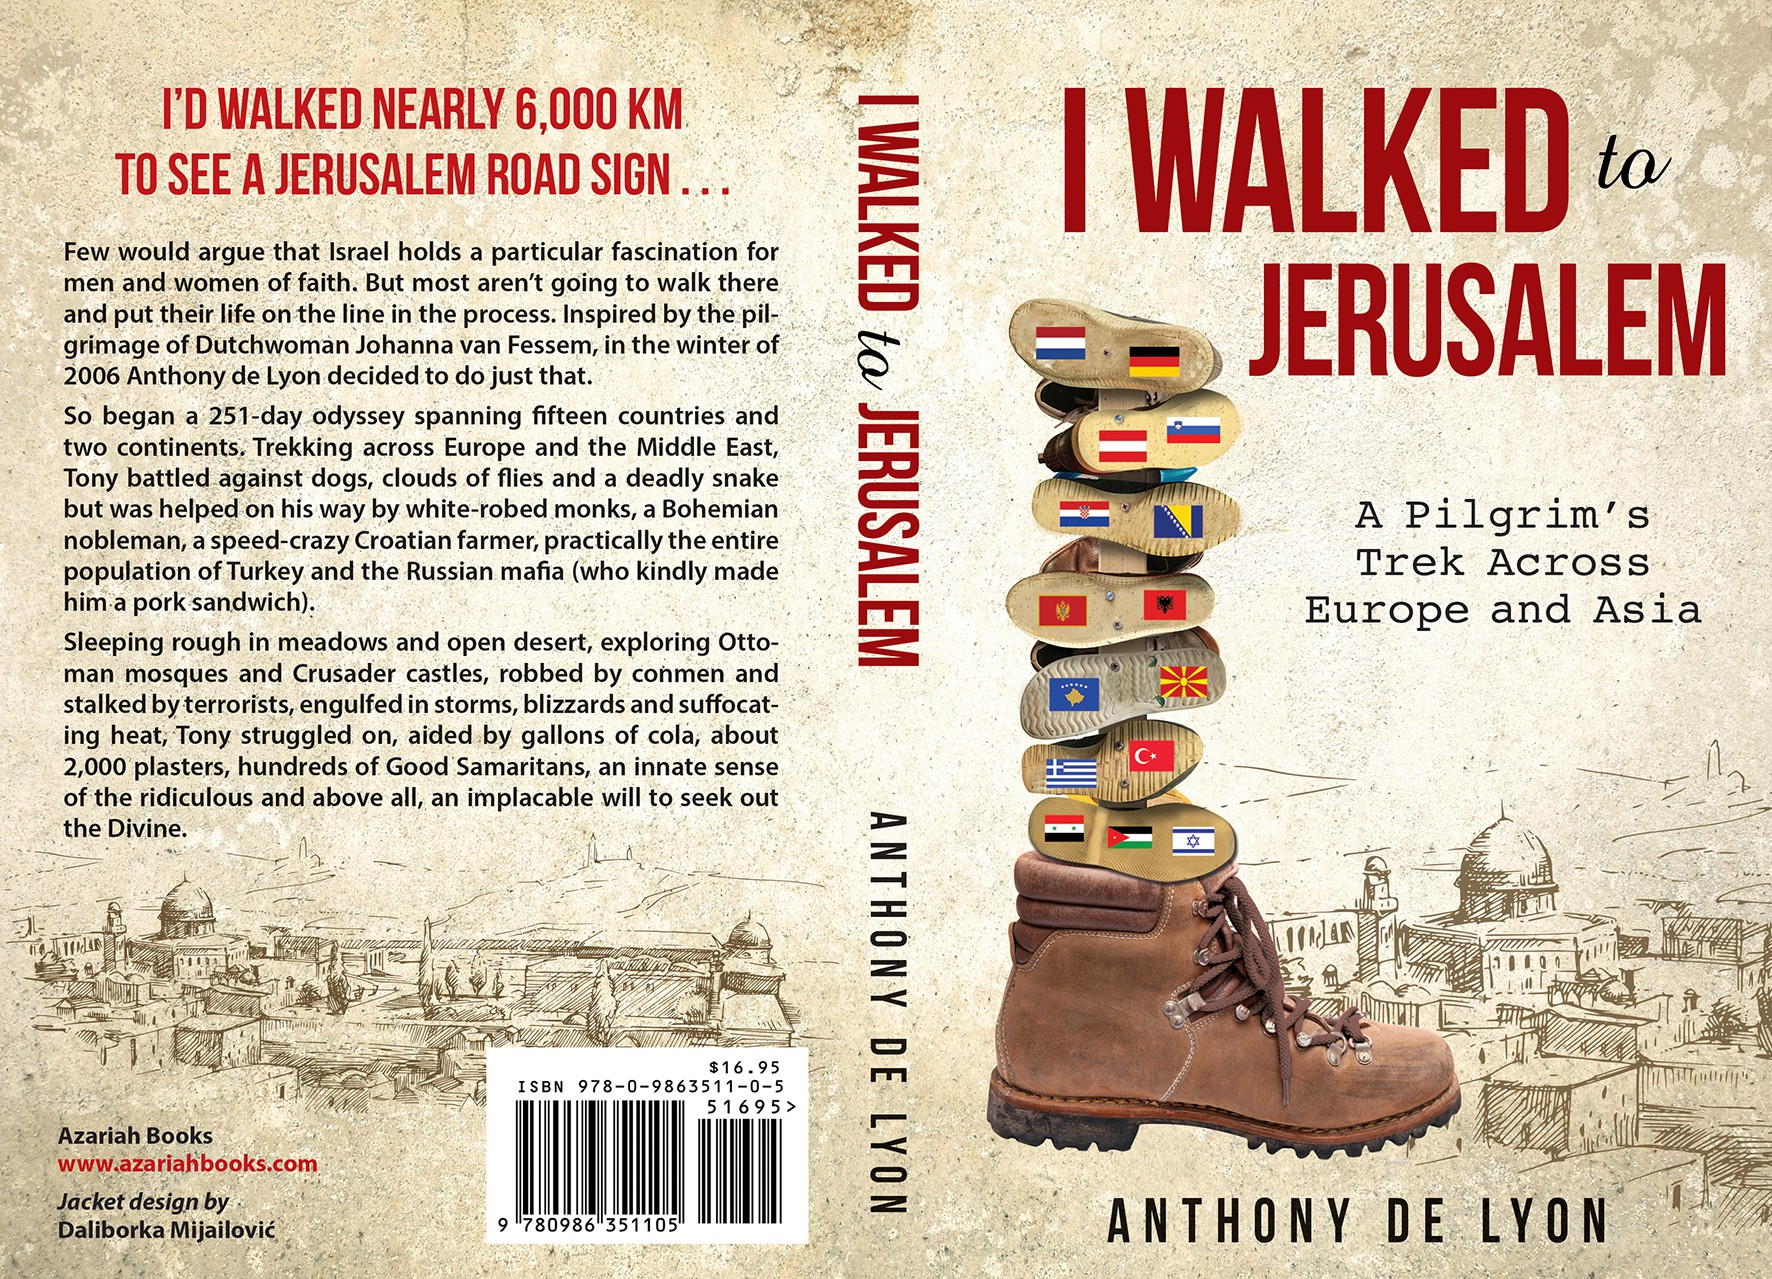 Design a stunning cover for my book which describes how I walked 6,000 km through 15 countries.